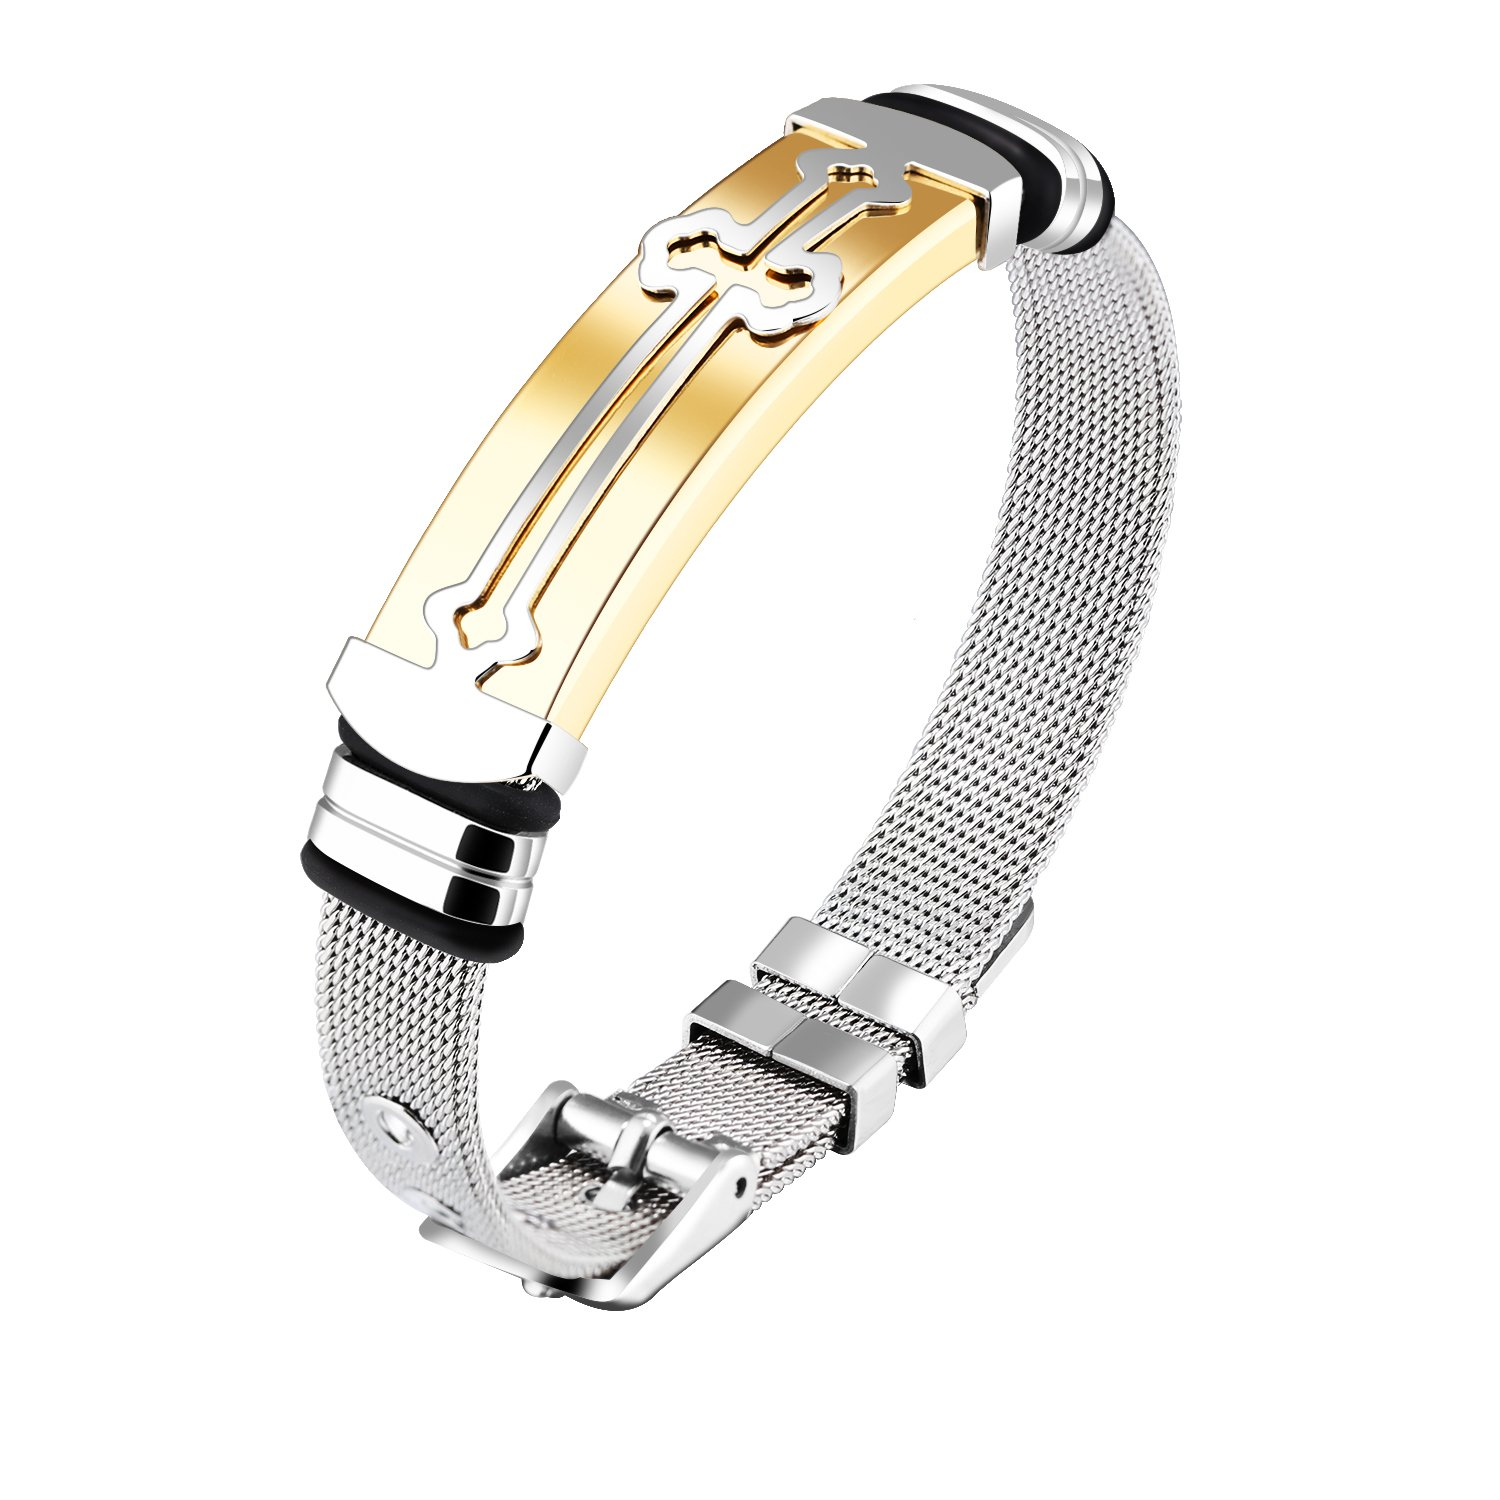 OPK Jewelry Men's Stainless Steel Adjustable Cross Bracelet with Buckle Clasp,Golden/Silvery, 6.69-7.48''